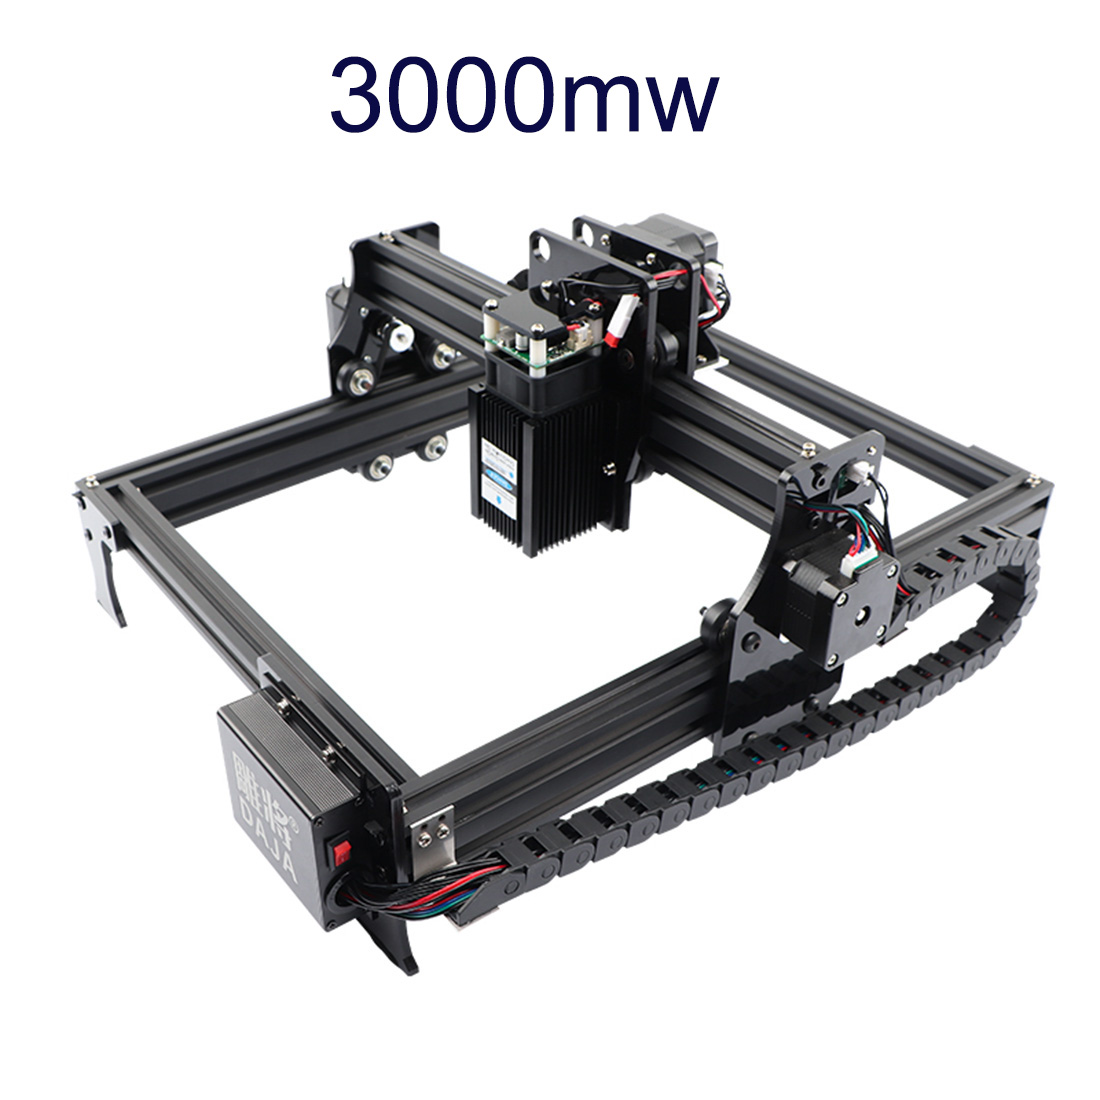 A3 3000mw 4500mw 7000mw DIY Laser Engraving Machine Mini Engraver Cutting Machine With WIFI Xmas Gift- US Plug/EU Plug/UK Plug